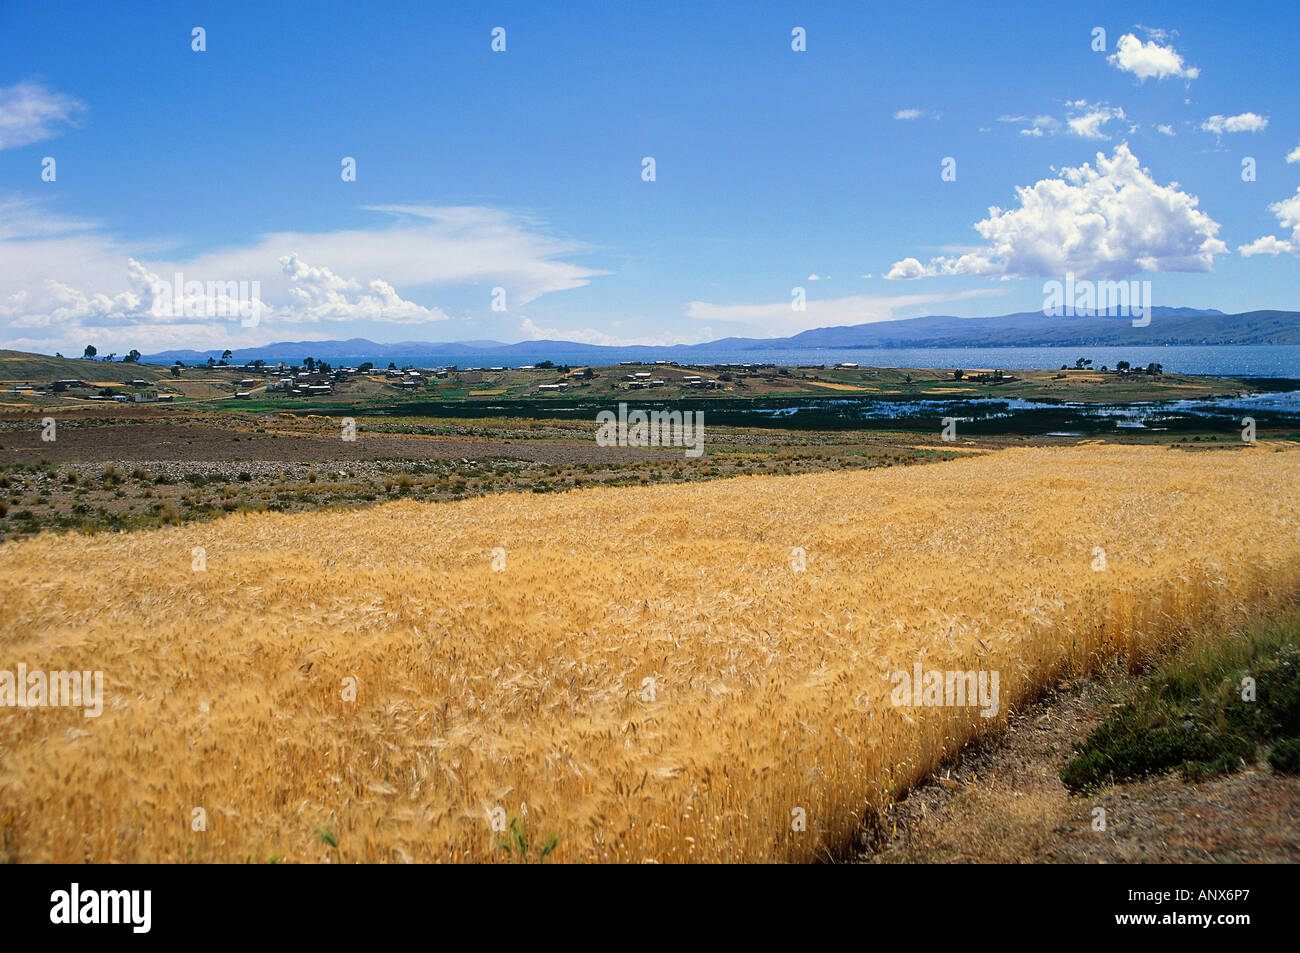 peasant houses agricultural crops lake titicaca border area of peru and bolivia - Stock Image